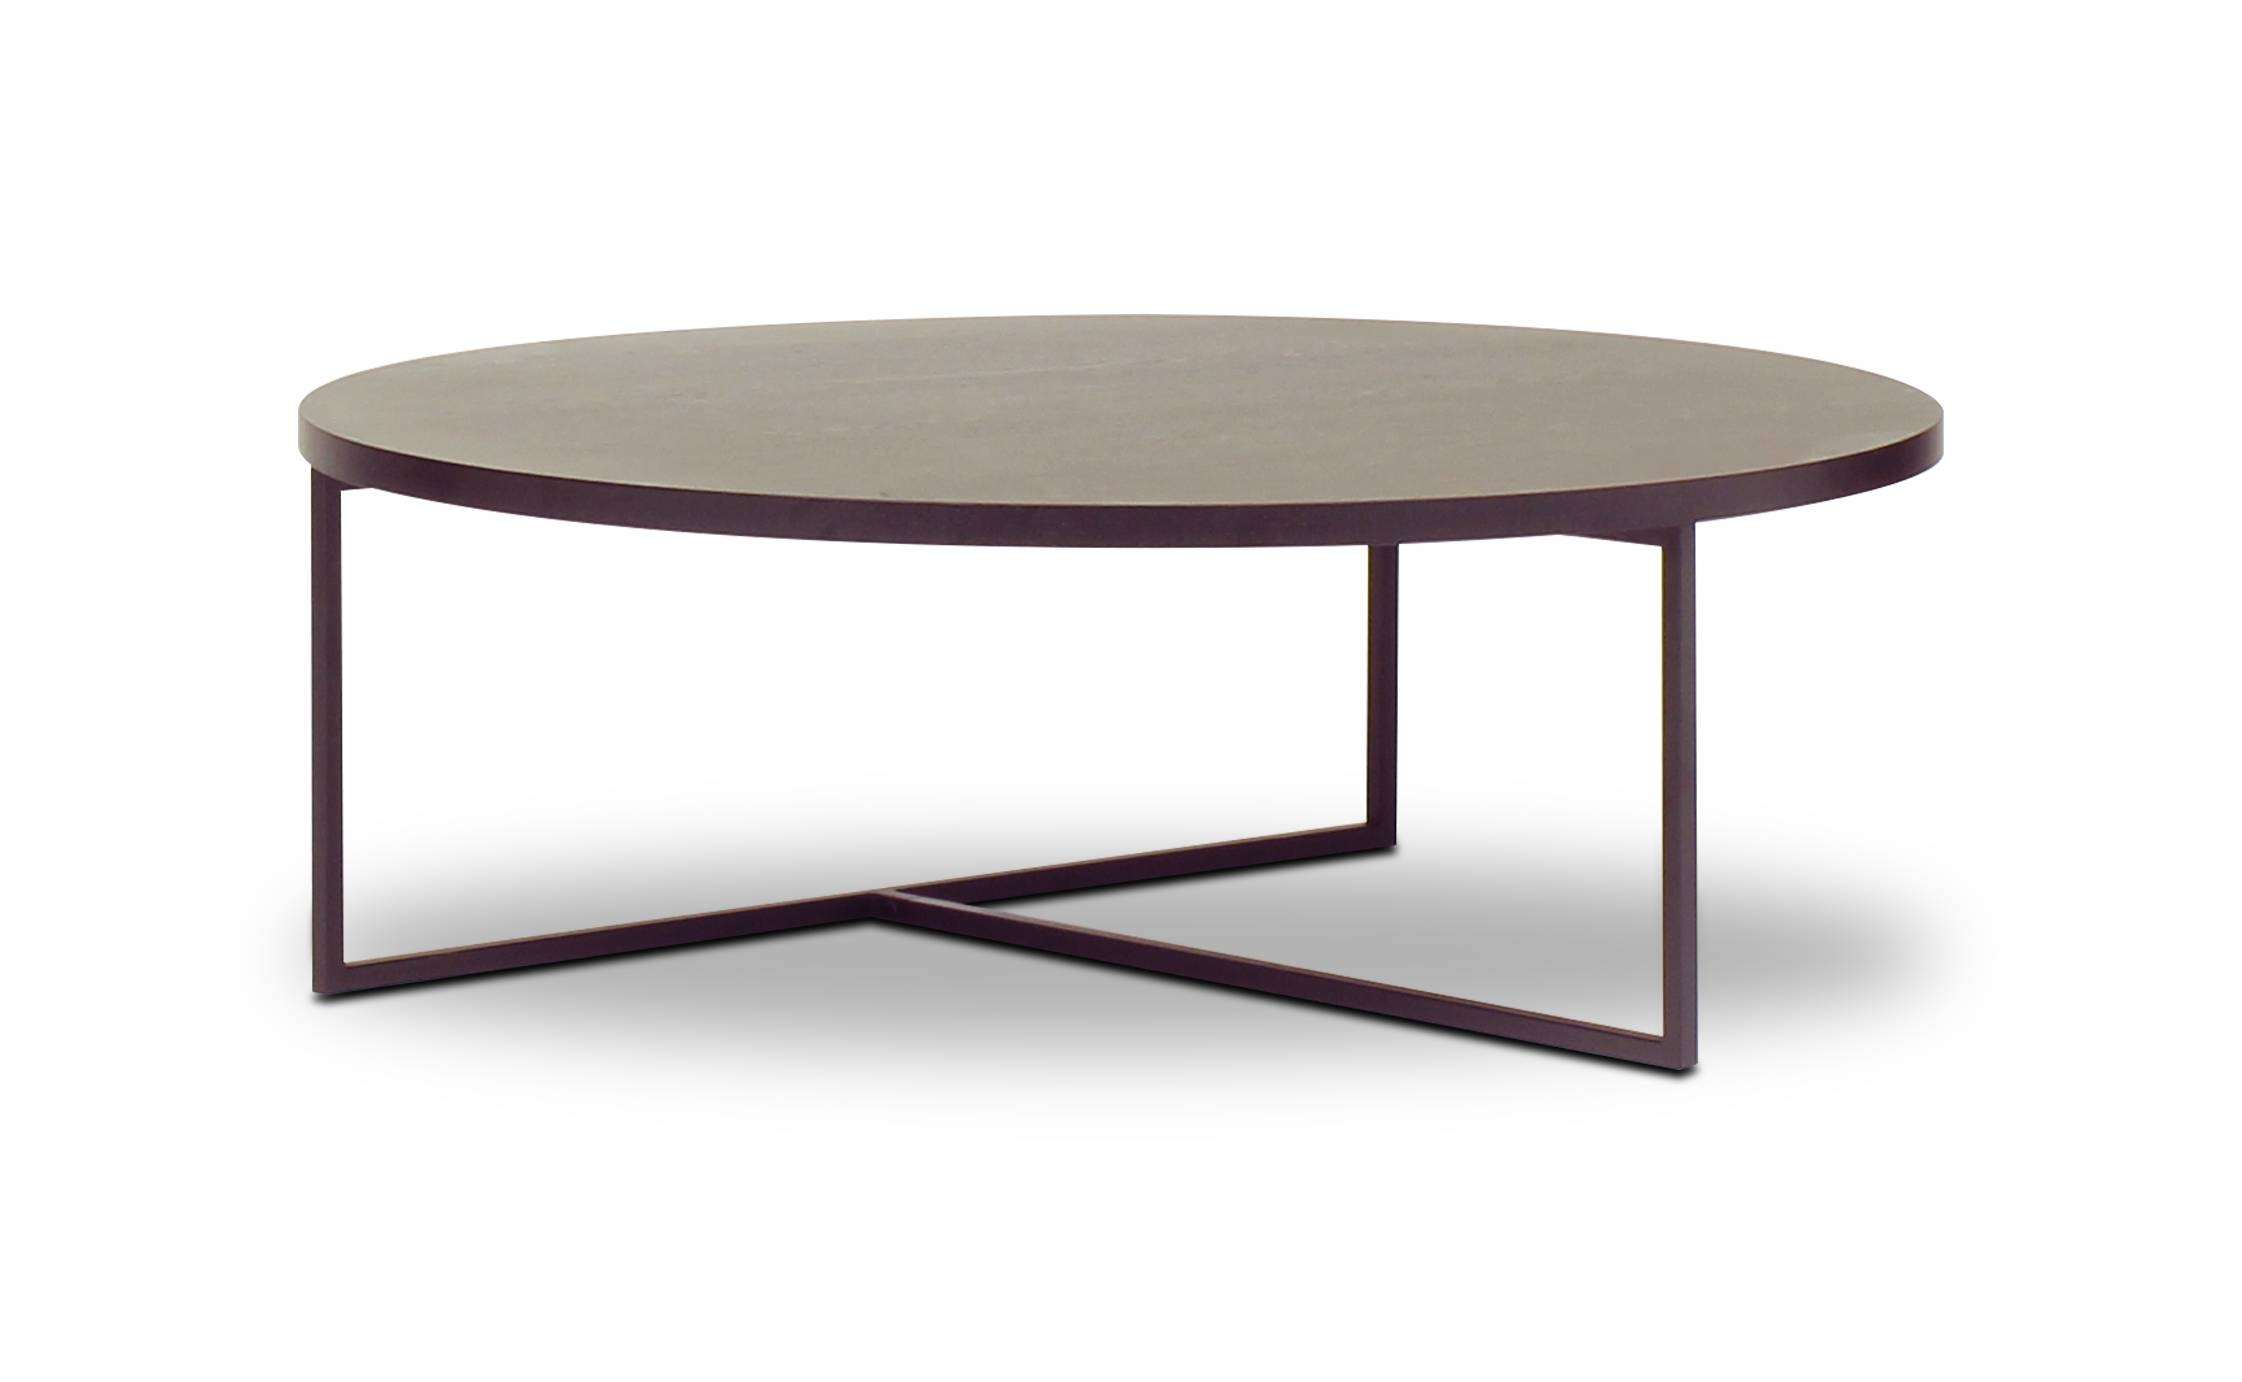 Turner Round - Coffee Table | Loungelovers intended for Black Circle Coffee Tables (Image 28 of 30)